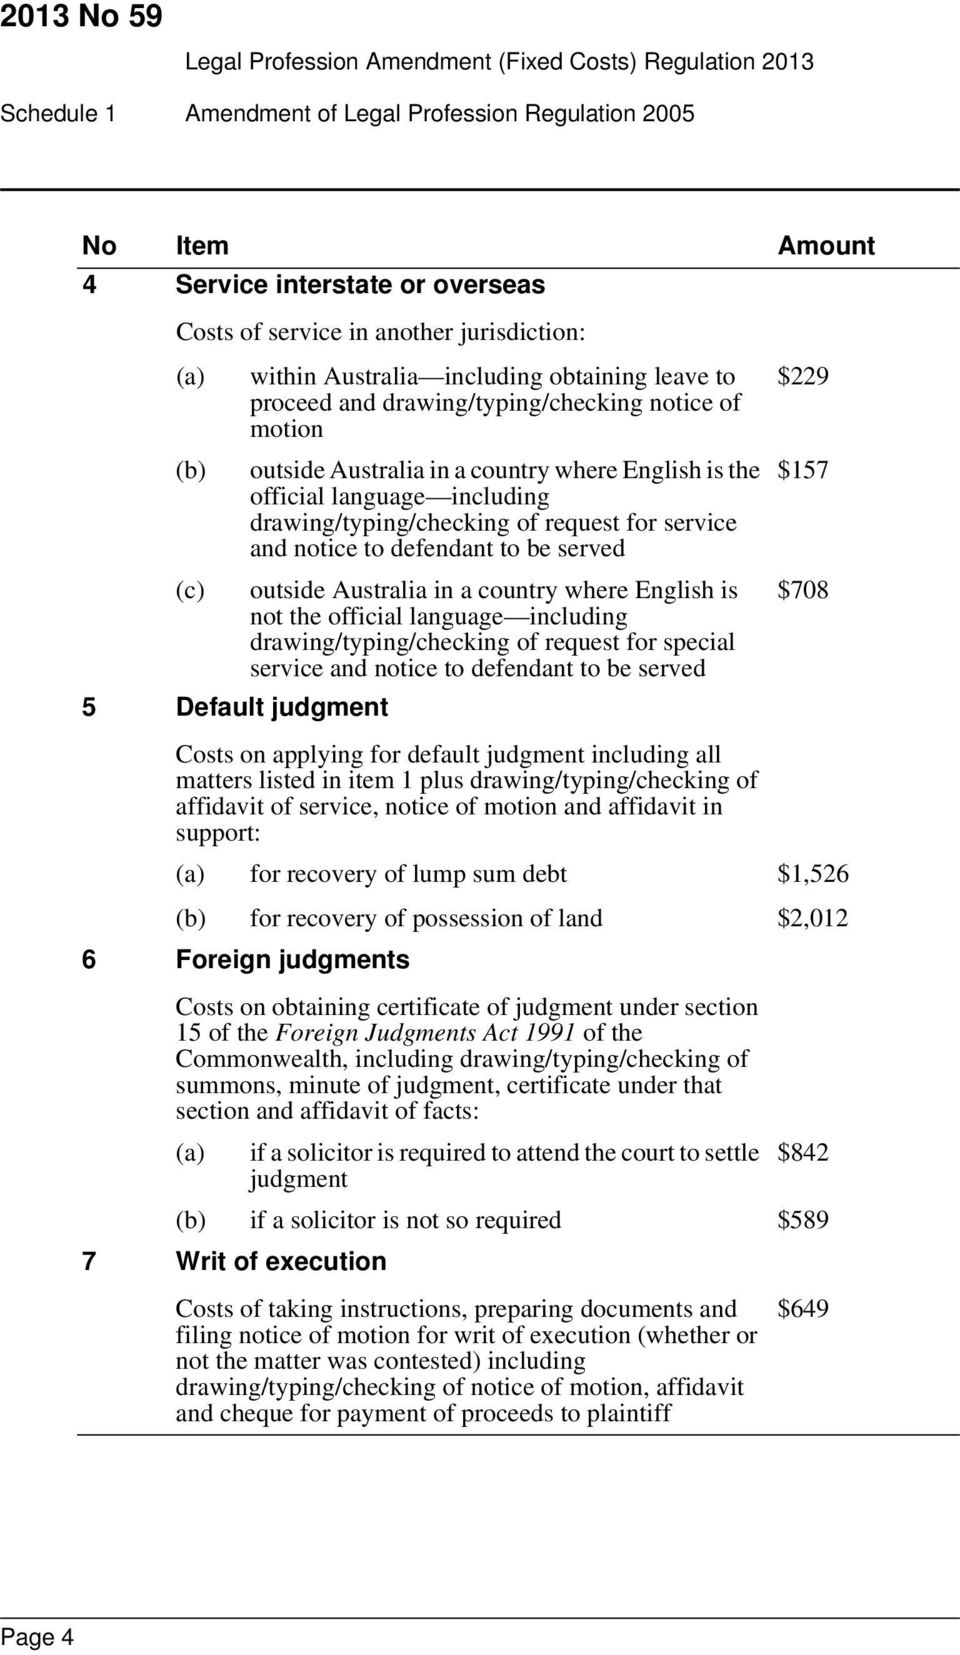 be served (c) outside Australia in a country where English is not the official language including drawing/typing/checking of request for special service and notice to defendant to be served 5 Default